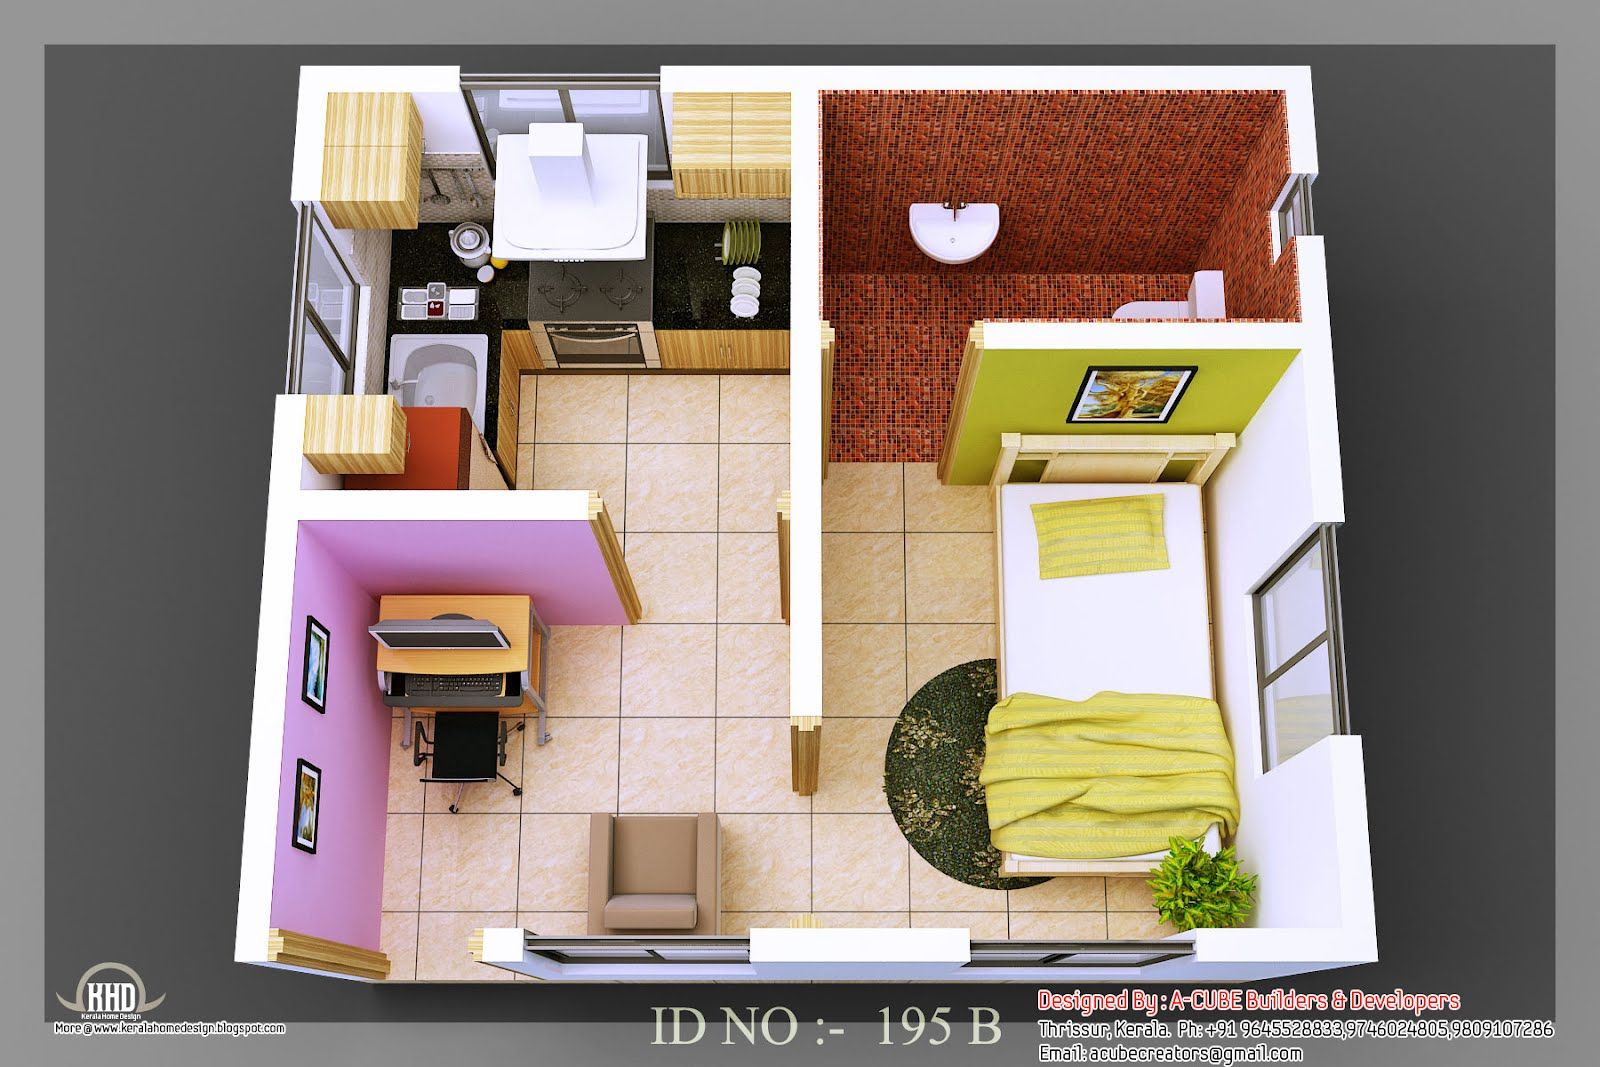 The 29 Best Small House Plans Ideas On Pinterest Small House ...